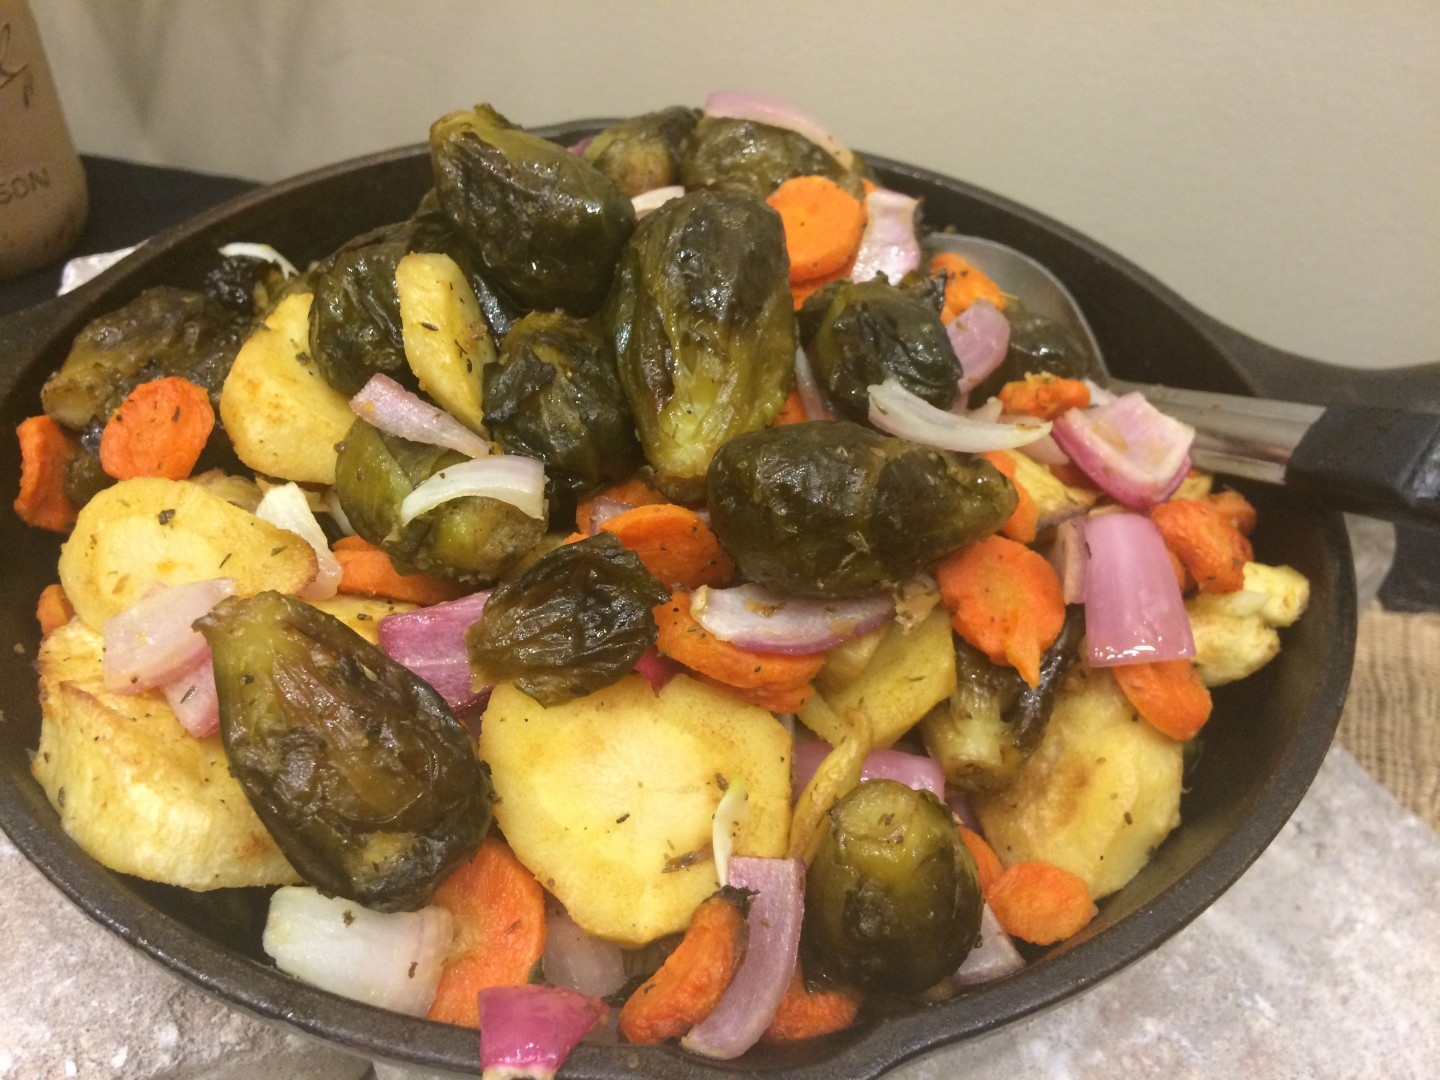 Harvest-roasted root vegetables